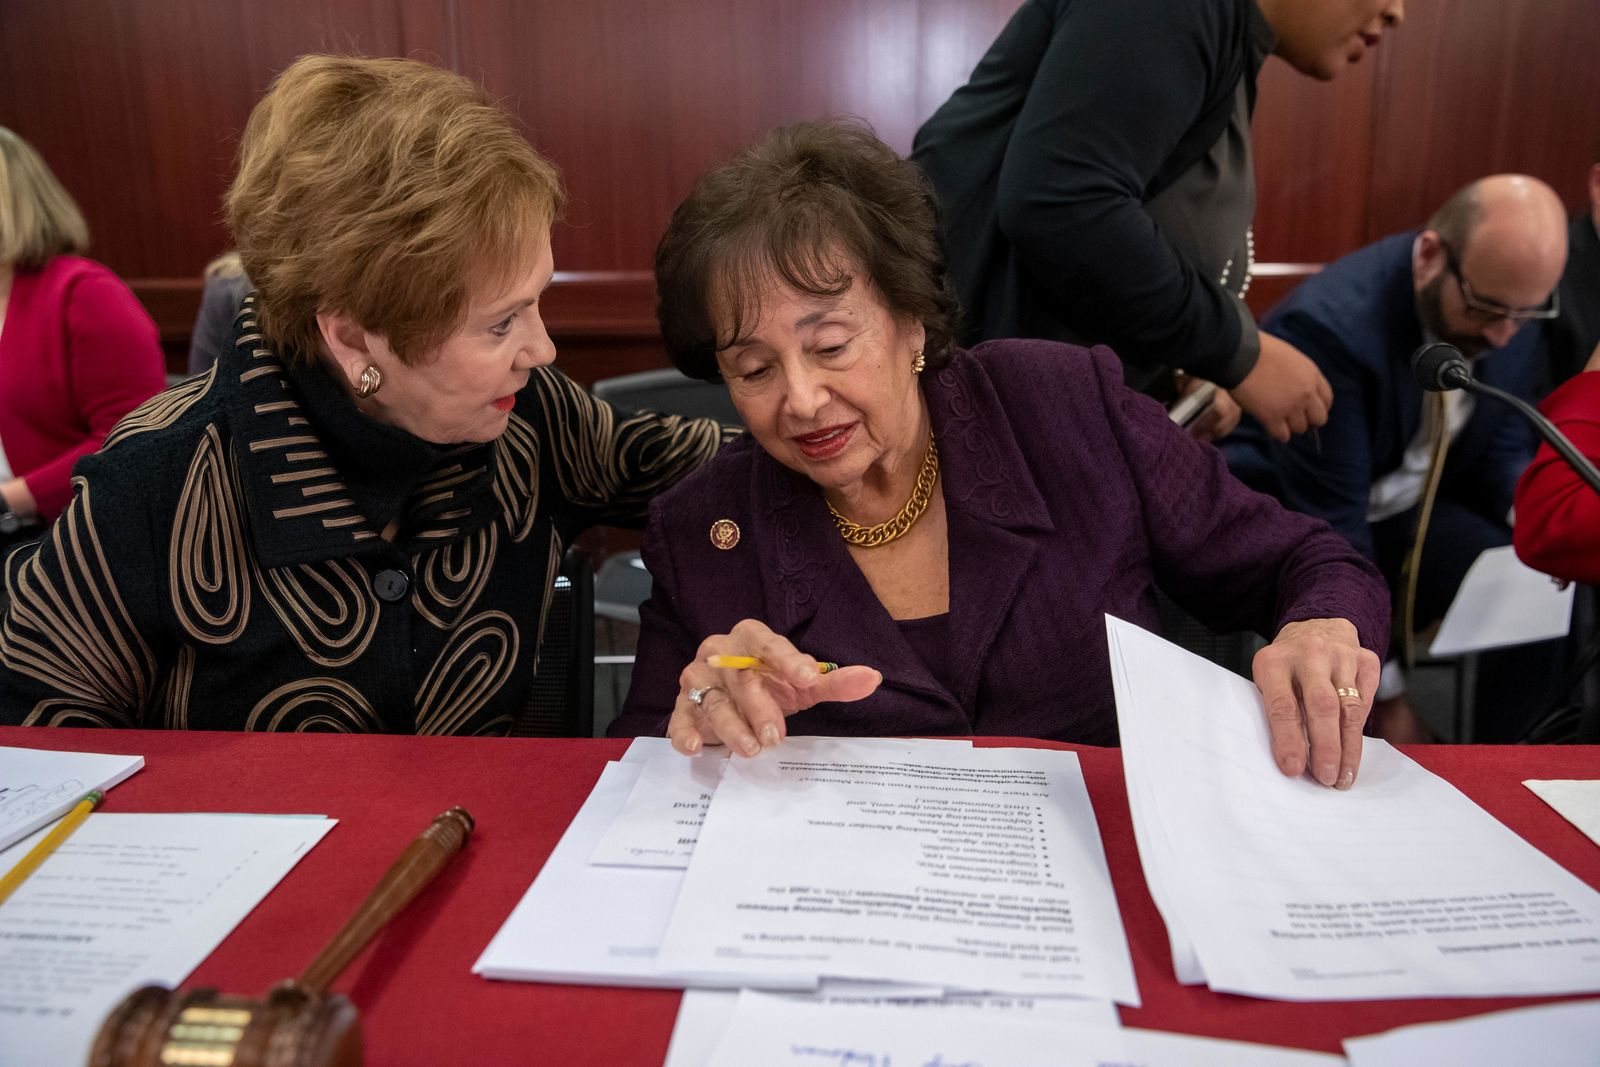 Rep. Kay Granger, R-Texas, left, ranking member of the House Appropriations Committee, speaks with Appropriations Chair Nita Lowey, D-N.Y., as a bipartisan group of House and Senate bargainers finished their first meeting to craft a border security compromise in hope of avoiding another government shutdown.  (AP Photo/J. Scott Applewhite)